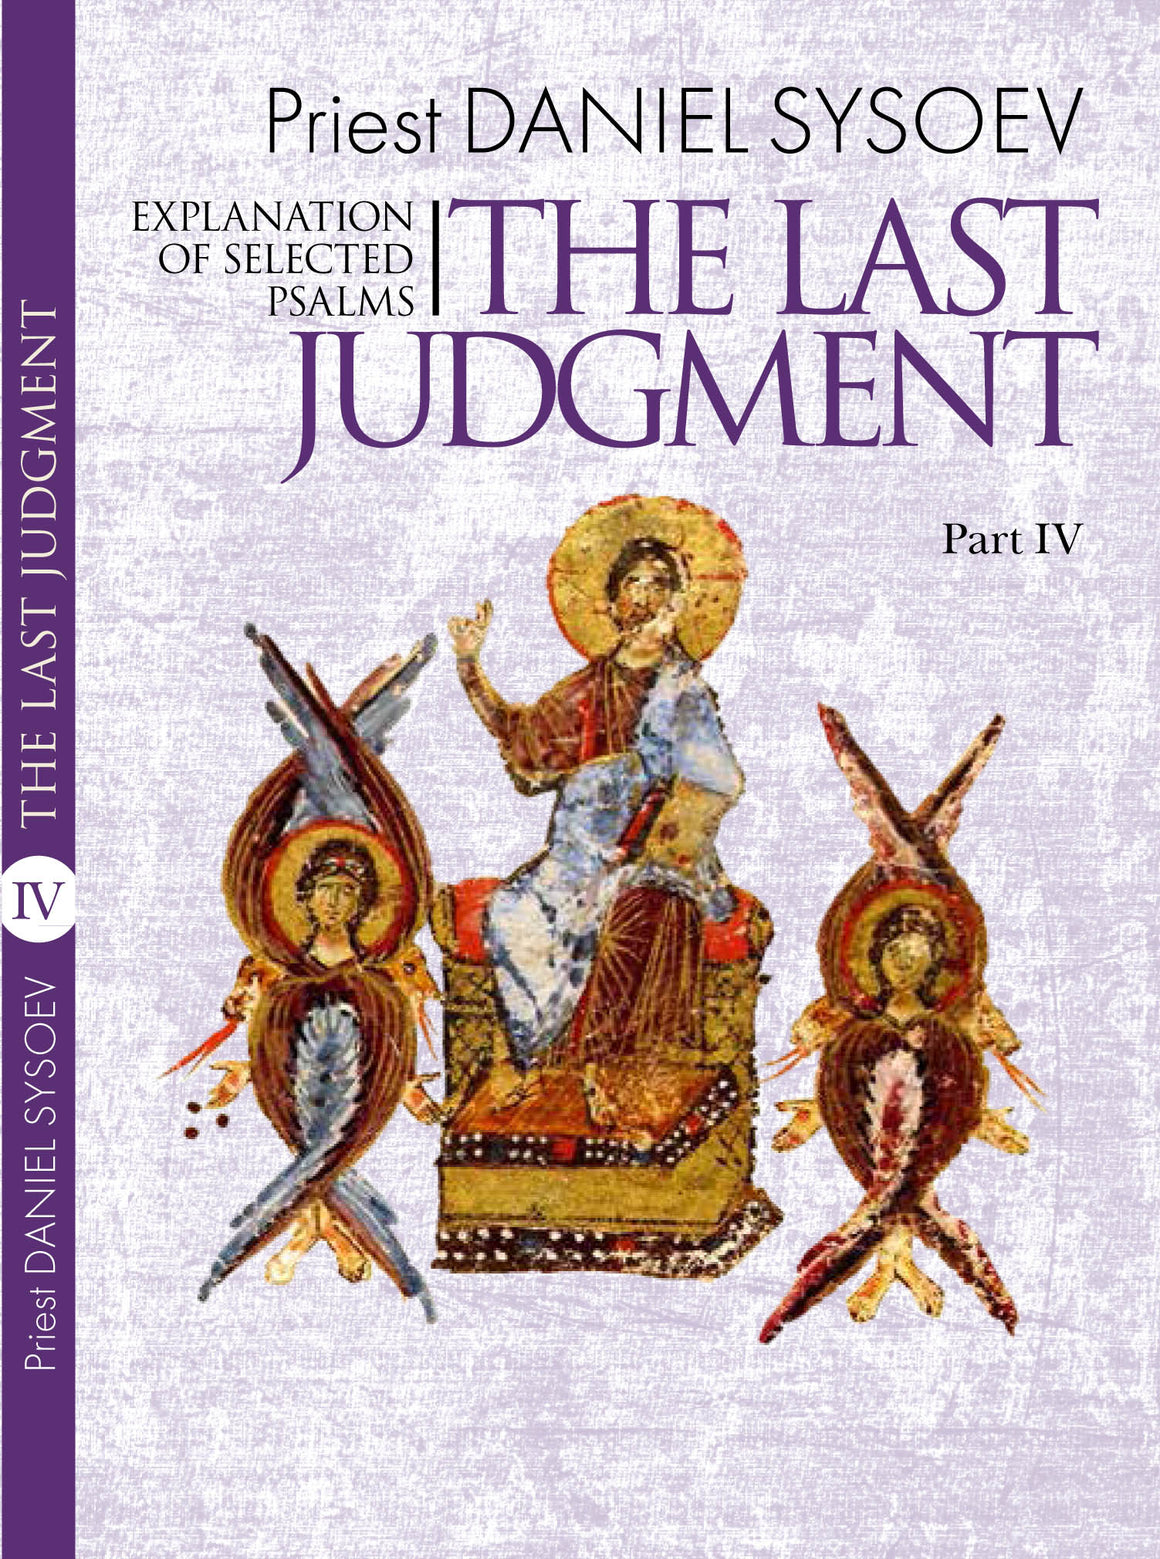 Part IV, Explanation of Selected Psalms: The Last Judgment